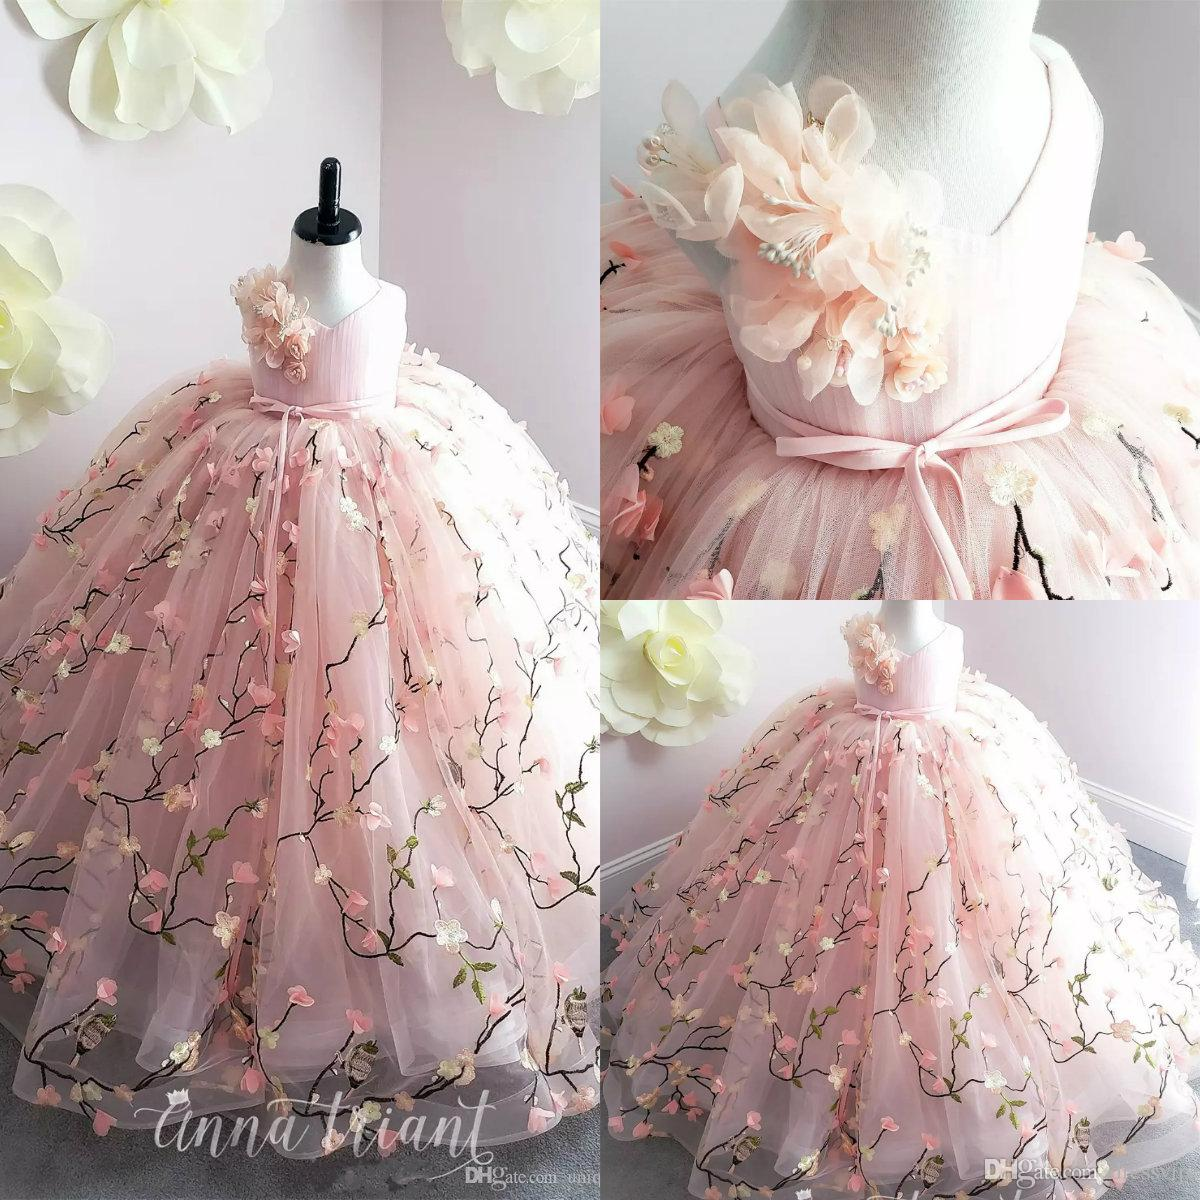 785aa5aab Princess Pink Flower Girl Dresses 2019 Lace 3D Floral Appliques Ball Gown  Little Girl Birthday Party Gowns Sweep Train Kids Formal Wear Lemon Flower  Girl ...